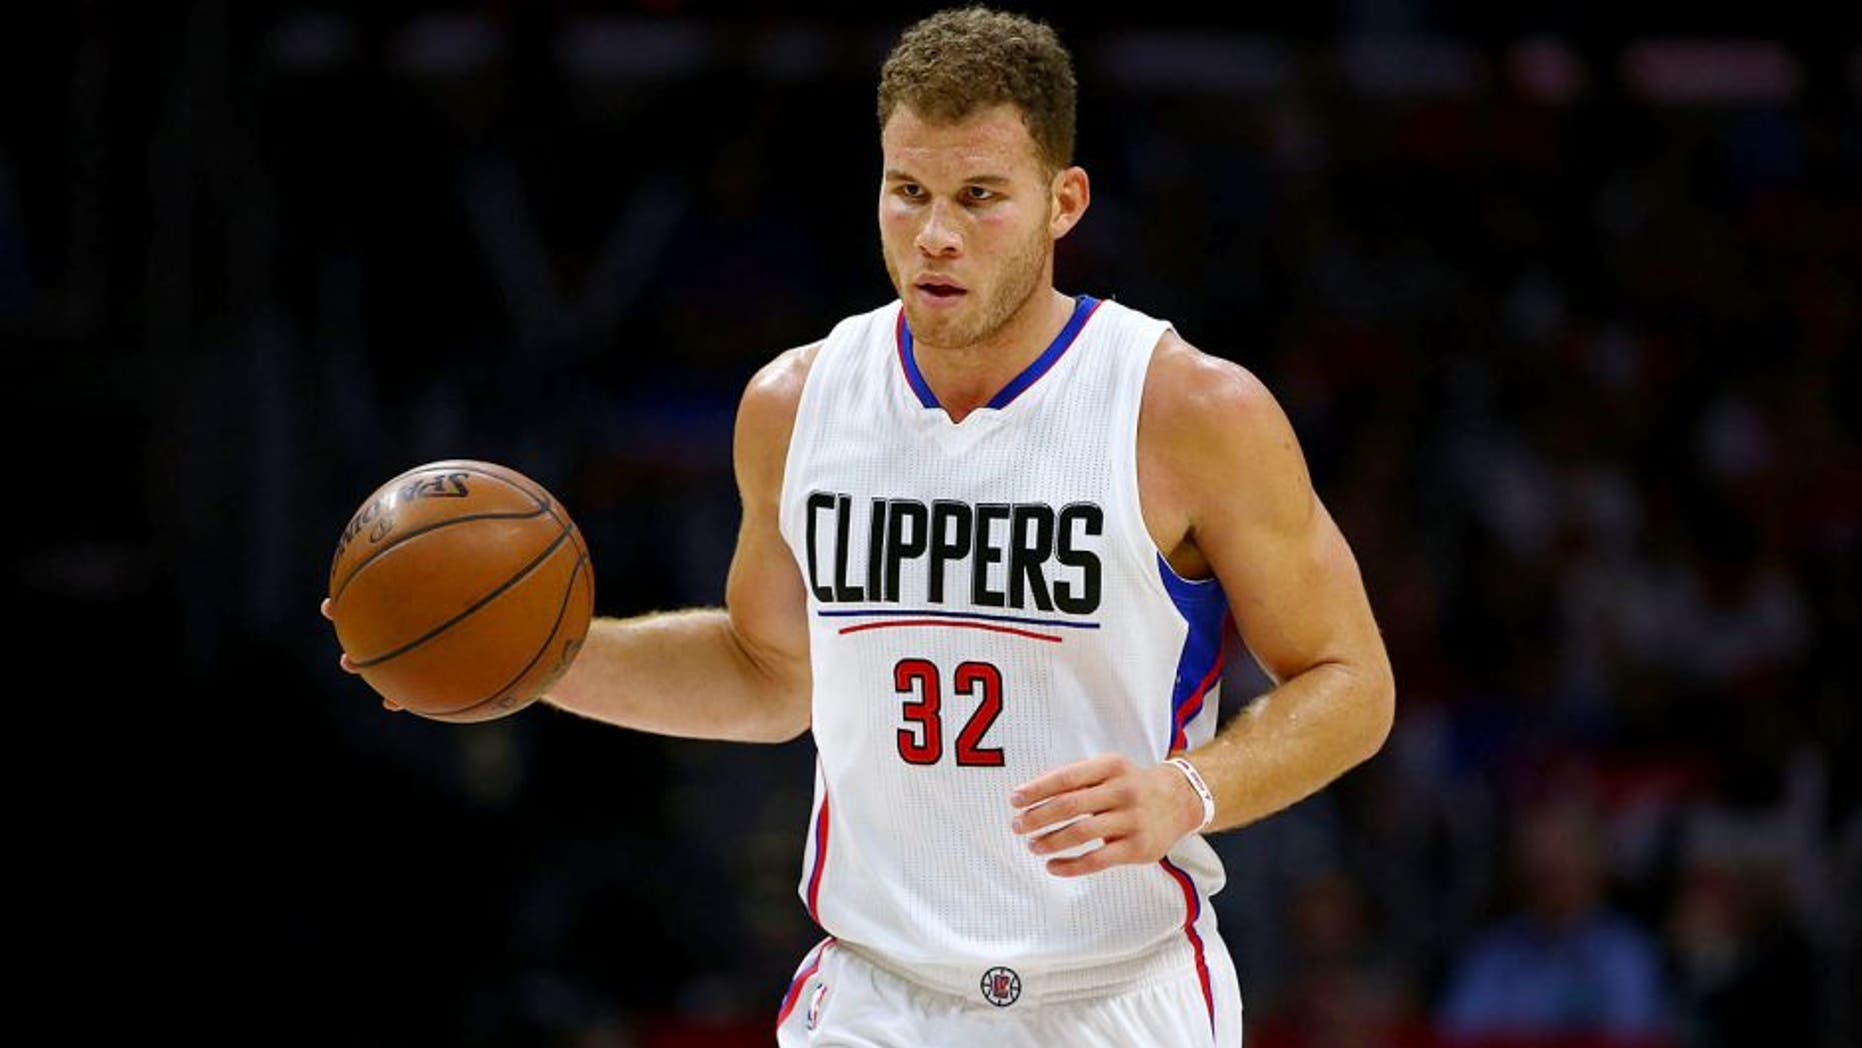 LOS ANGELES, CA - NOVEMBER 14: Blake Griffin #32 of the Los Angeles Clippers dribbles the ball upcourt in the second half of the NBA game against the Detroit Pistons at Staples Center on November 14, 2015 in Los Angeles, California. The Clippers defeated the Pistons 101-96. NOTE TO USER: User expressly acknowledges and agrees that, by downloading and or using this photograph, User is consenting to the terms and conditions of the Getty Images License Agreement. (Photo by Victor Decolongon/Getty Images)